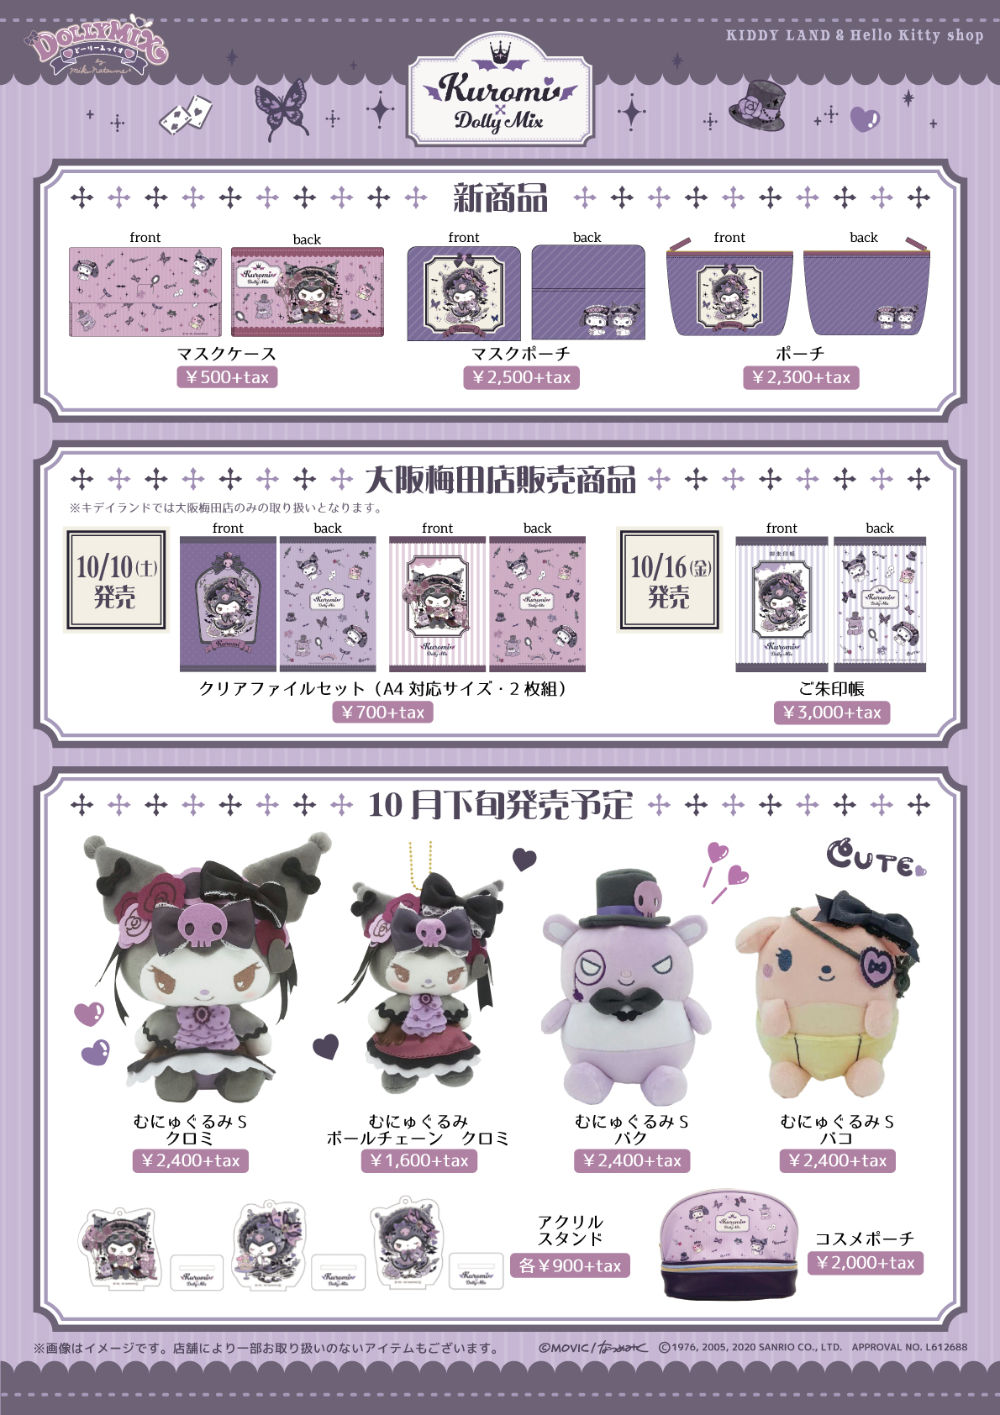 October 10th Sat Start Kuromi X Dolly Mix Kiddy Land Hello Kitty Shop 13 Stores Welcome To Kiddy Land クロミ 10月10日 10月